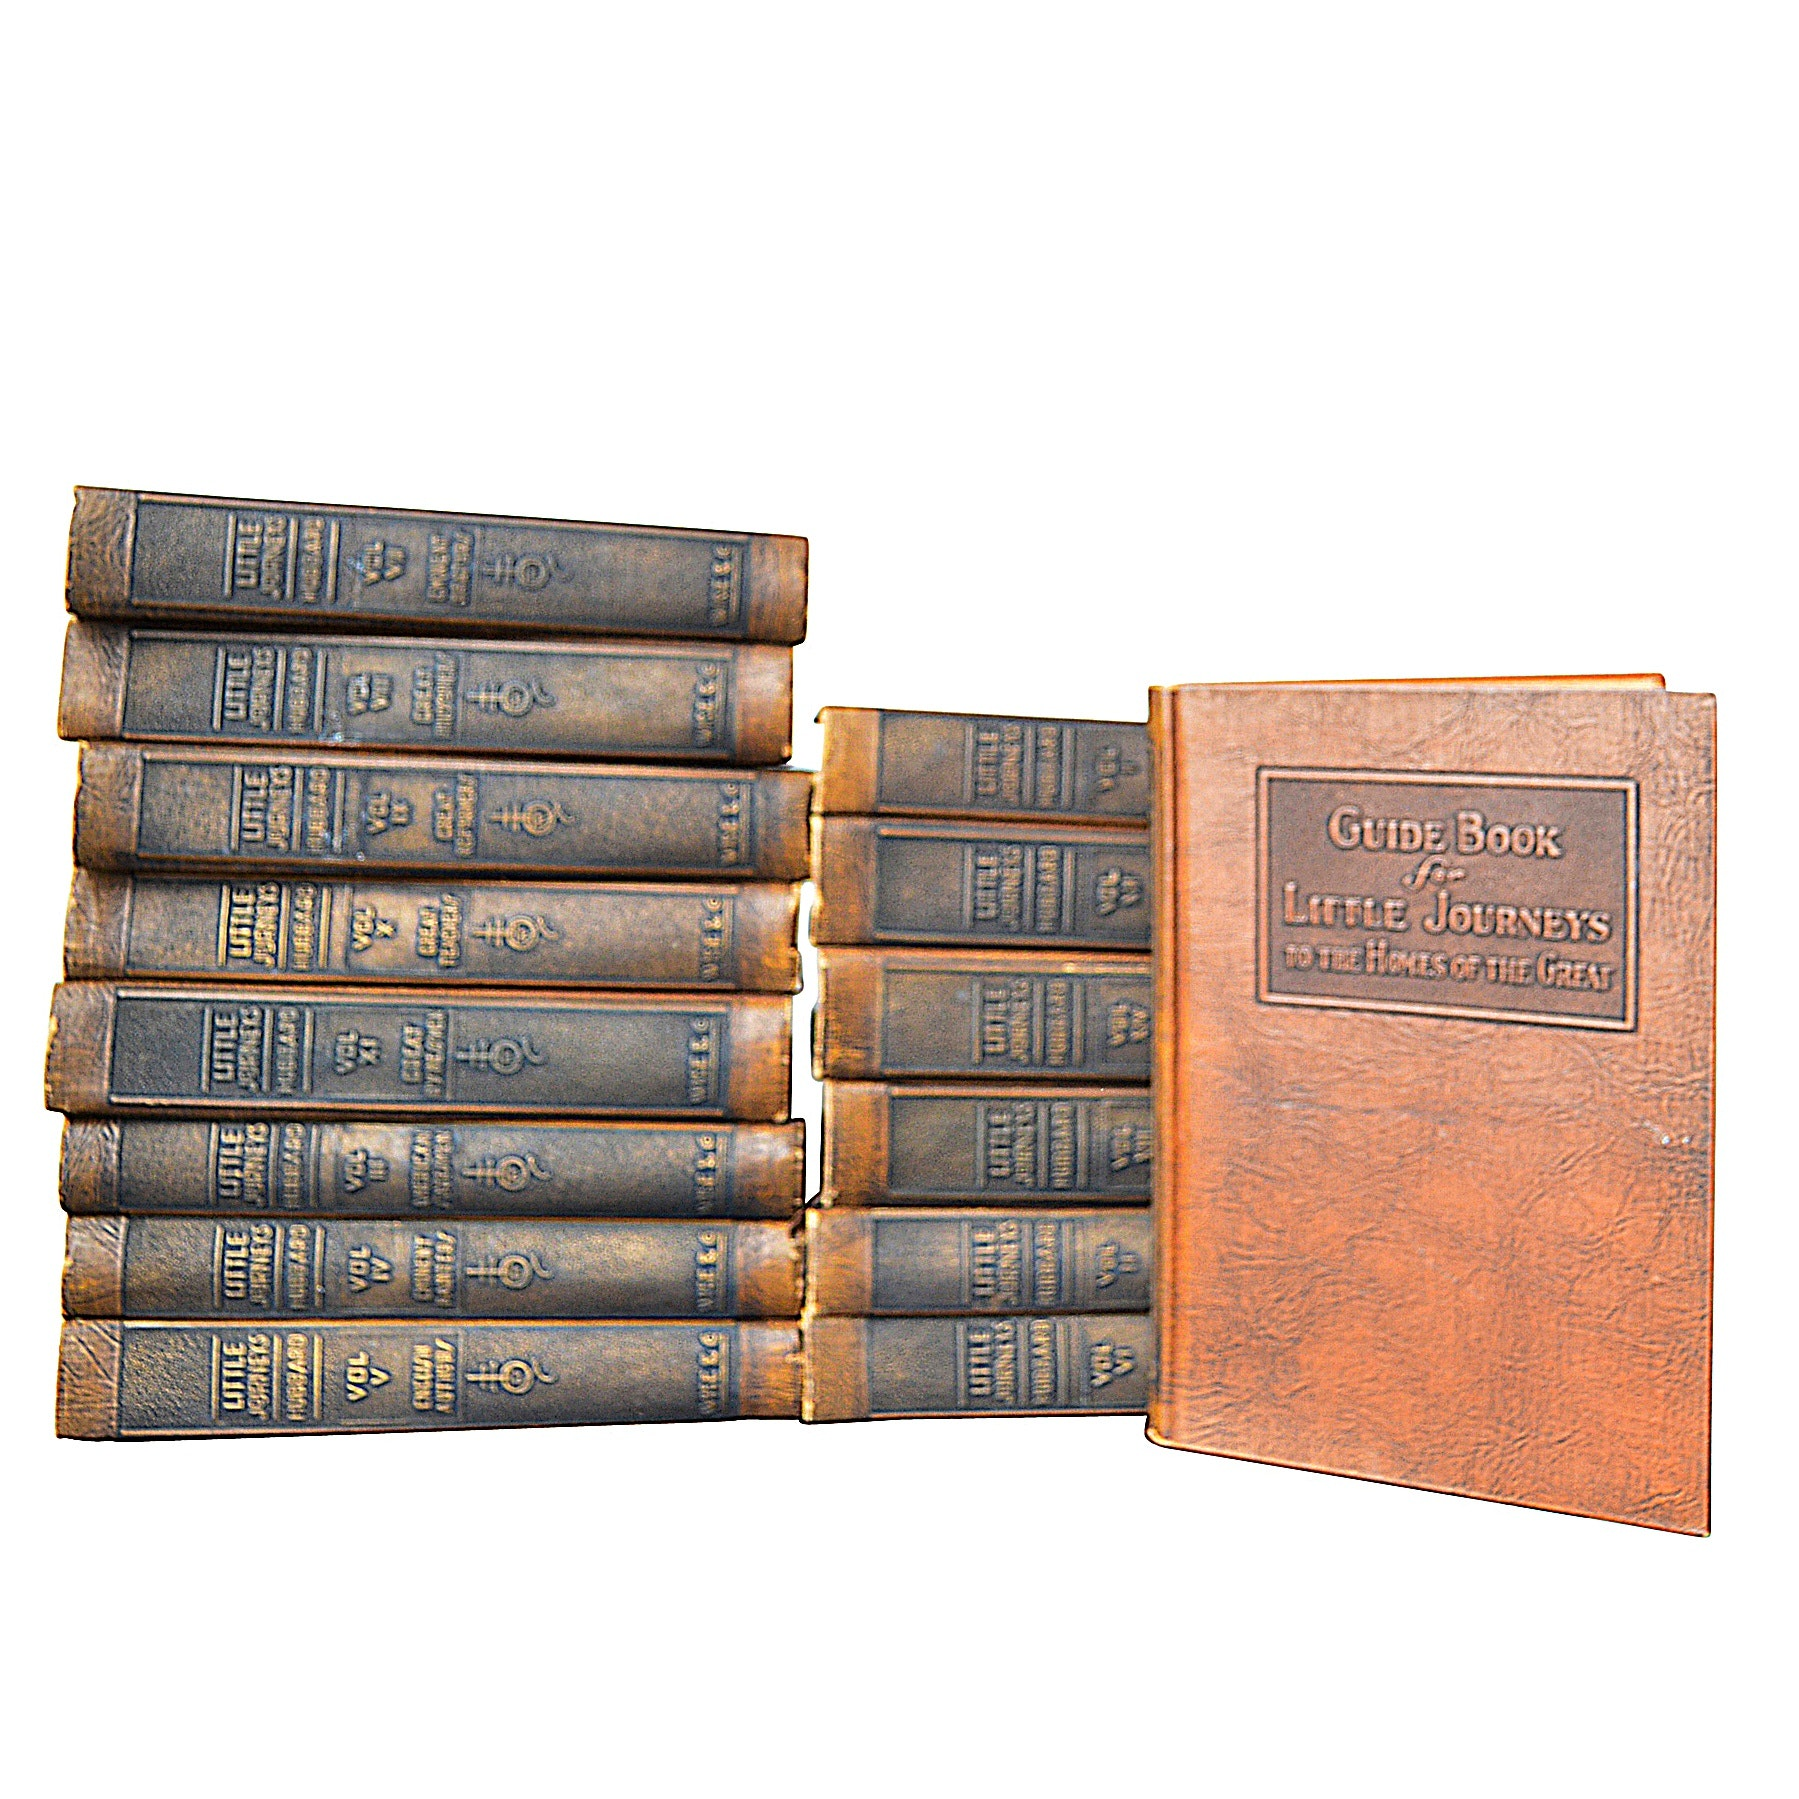 """""""Little Journeys"""" 14 Volume Set by Elbert Hubbard, circa 1928 with Guide Book"""